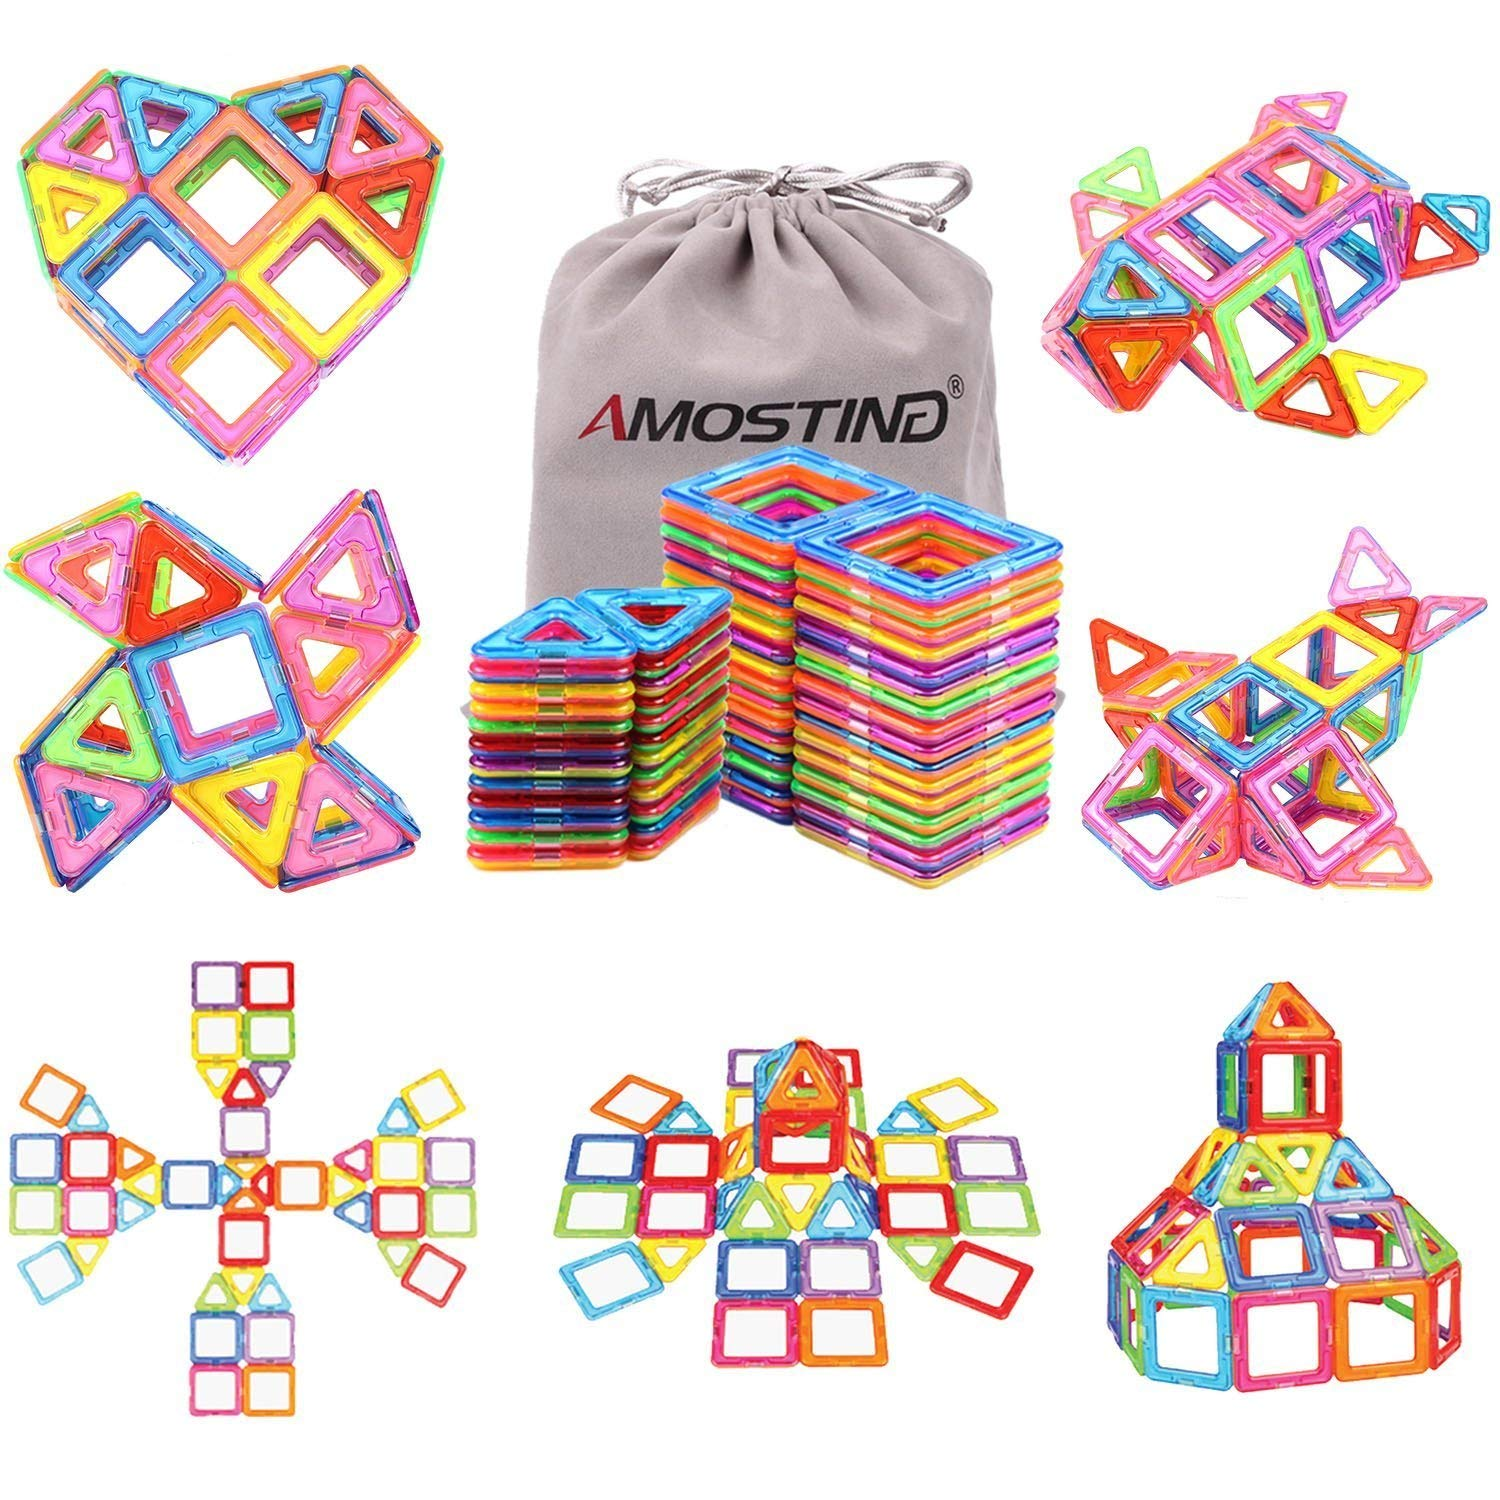 AMOSTING Magnetic Blocks Building Set for Kids, Magnetic Tiles Educational Building Construction Toys for Boys and Girls with Storage Bag - 56pcs